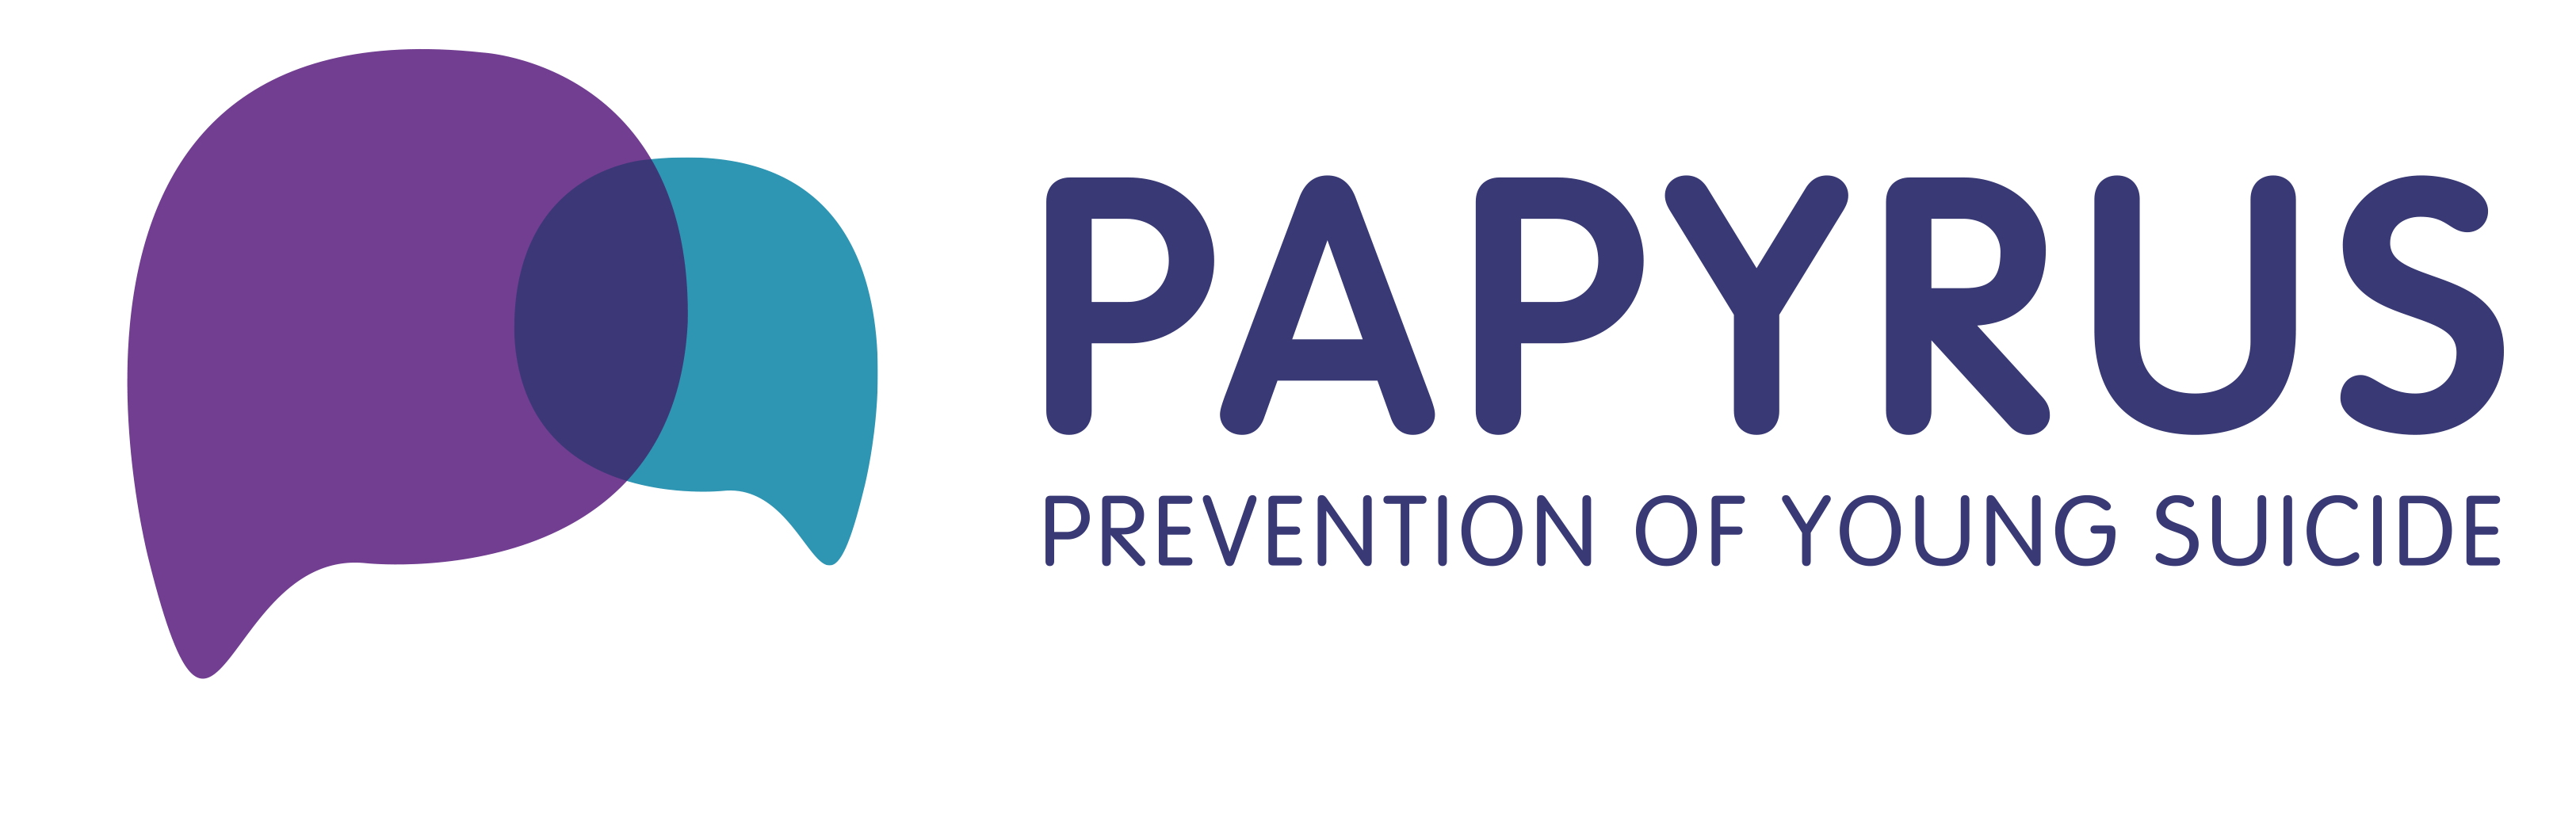 Home | Papyrus UK | Suicide Prevention Charity